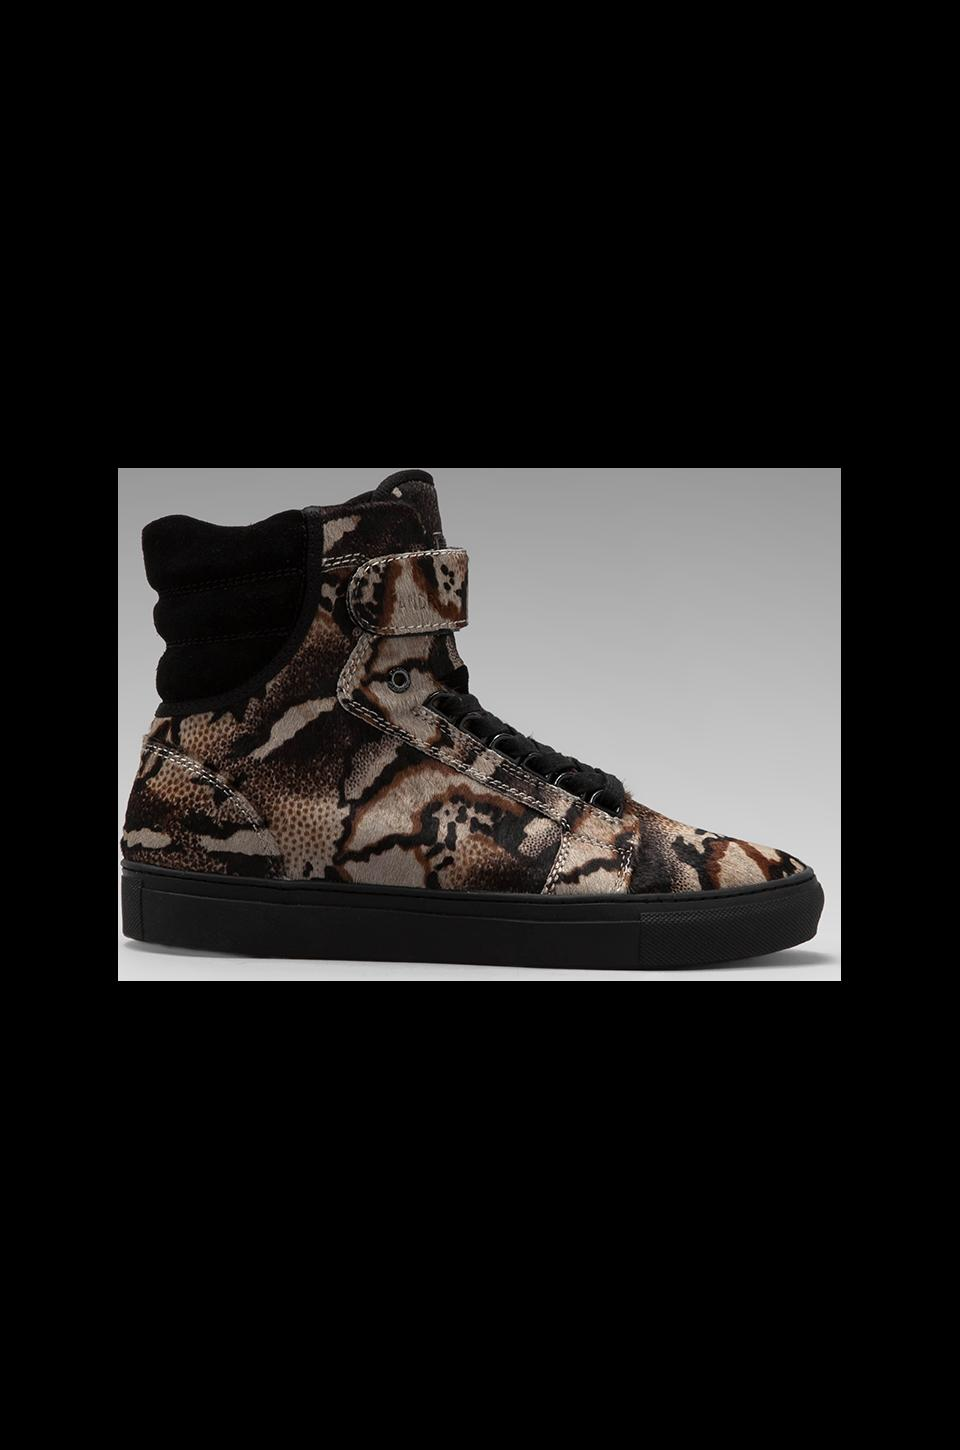 Android Homme Propulsion 1.5 with Faux Pony Hair in Boa